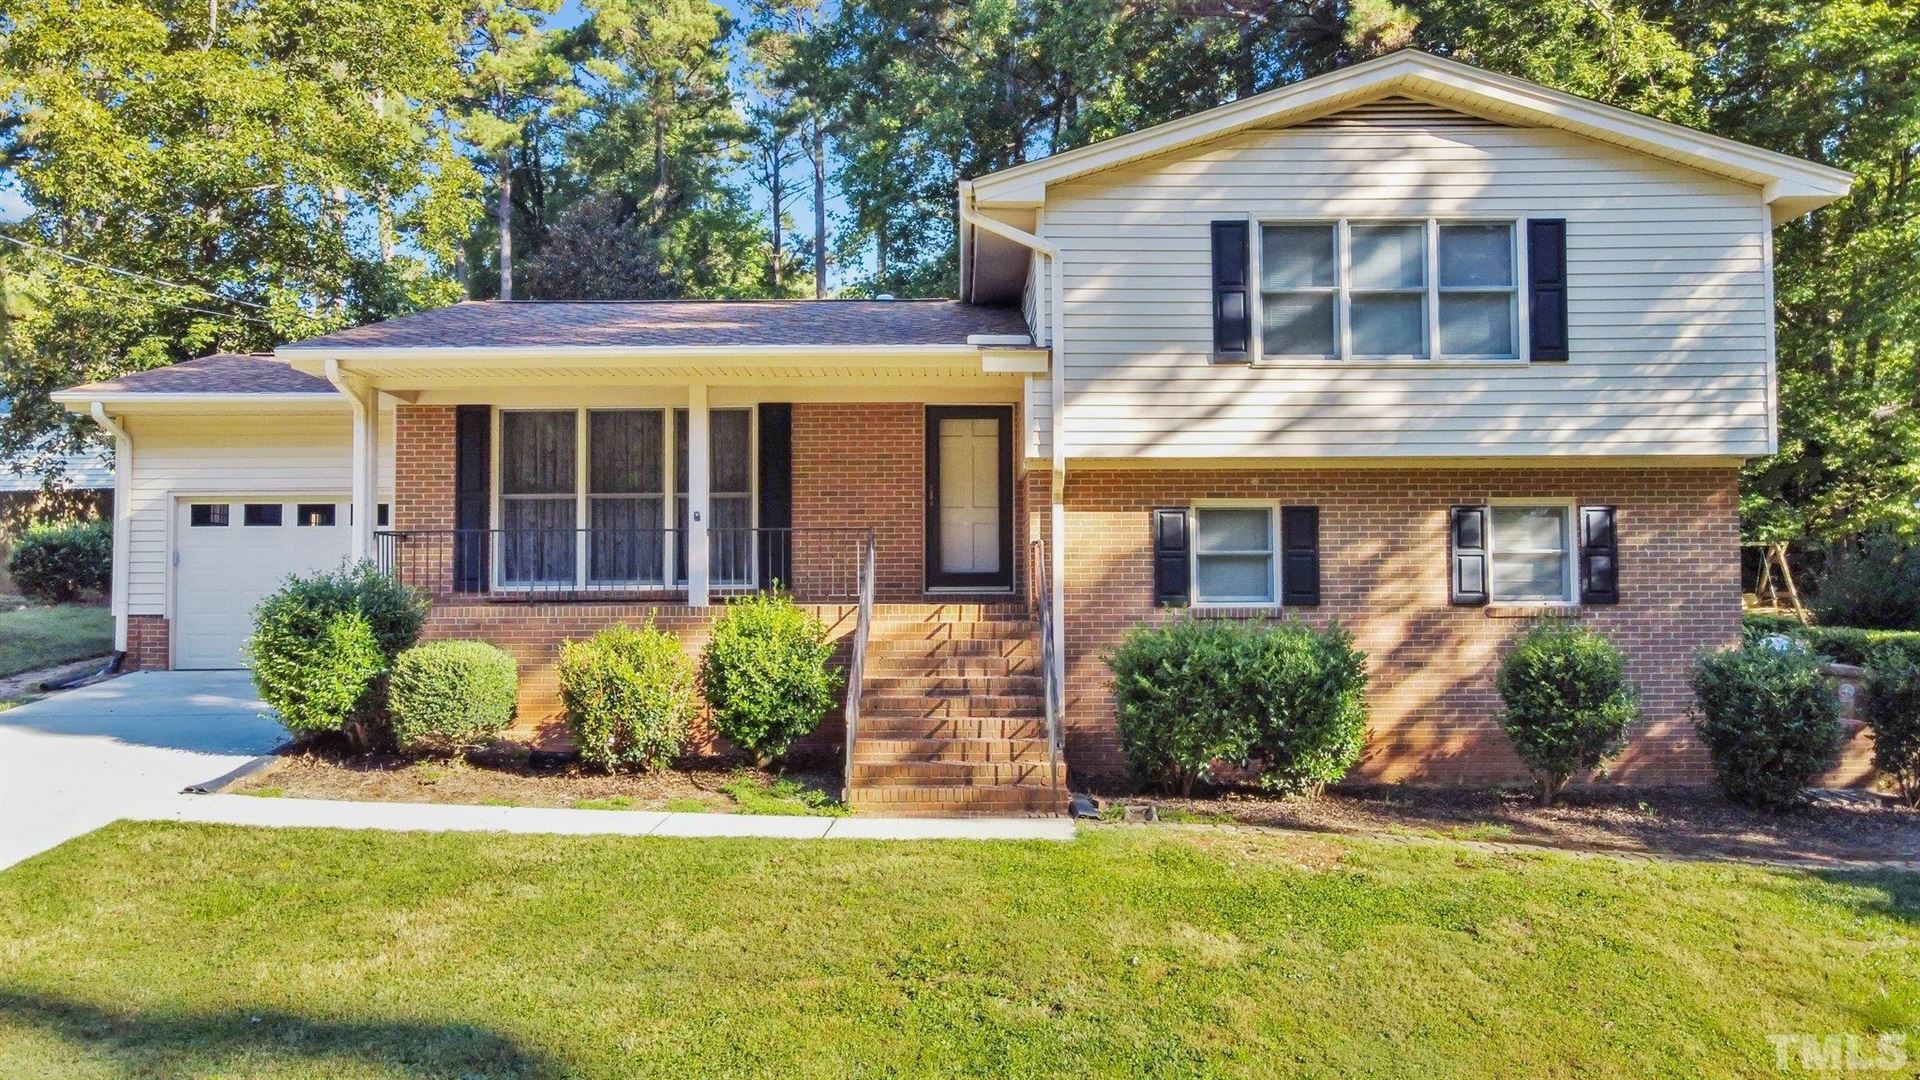 Photo of 1010 Cuscowilla Drive, Cary, NC 27511 (MLS # 2408771)